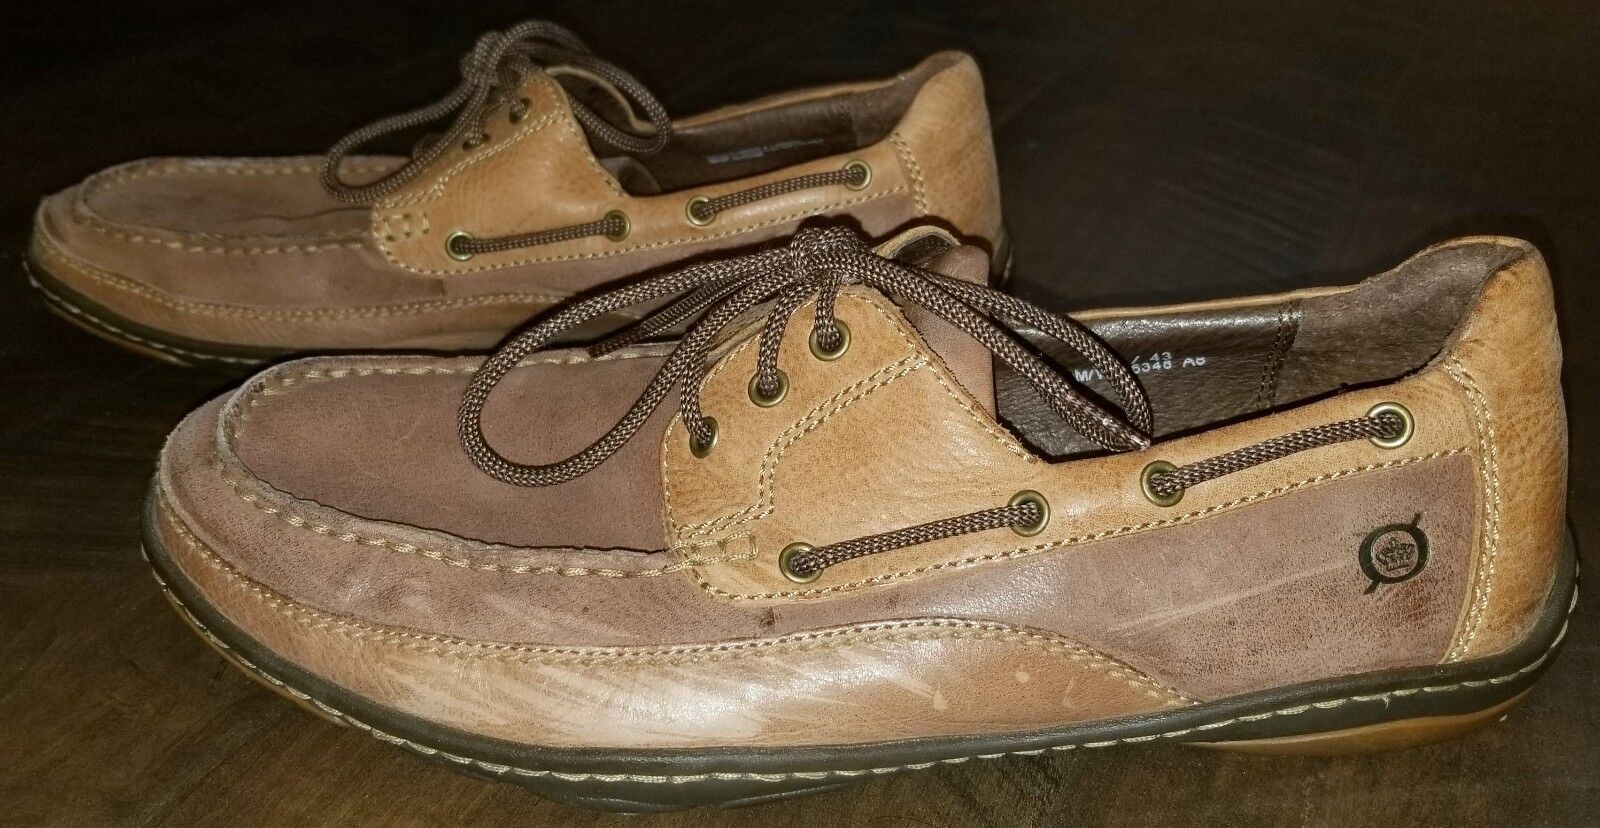 Men's Born Brown Casual Dress shoes Loafers Size 9.5